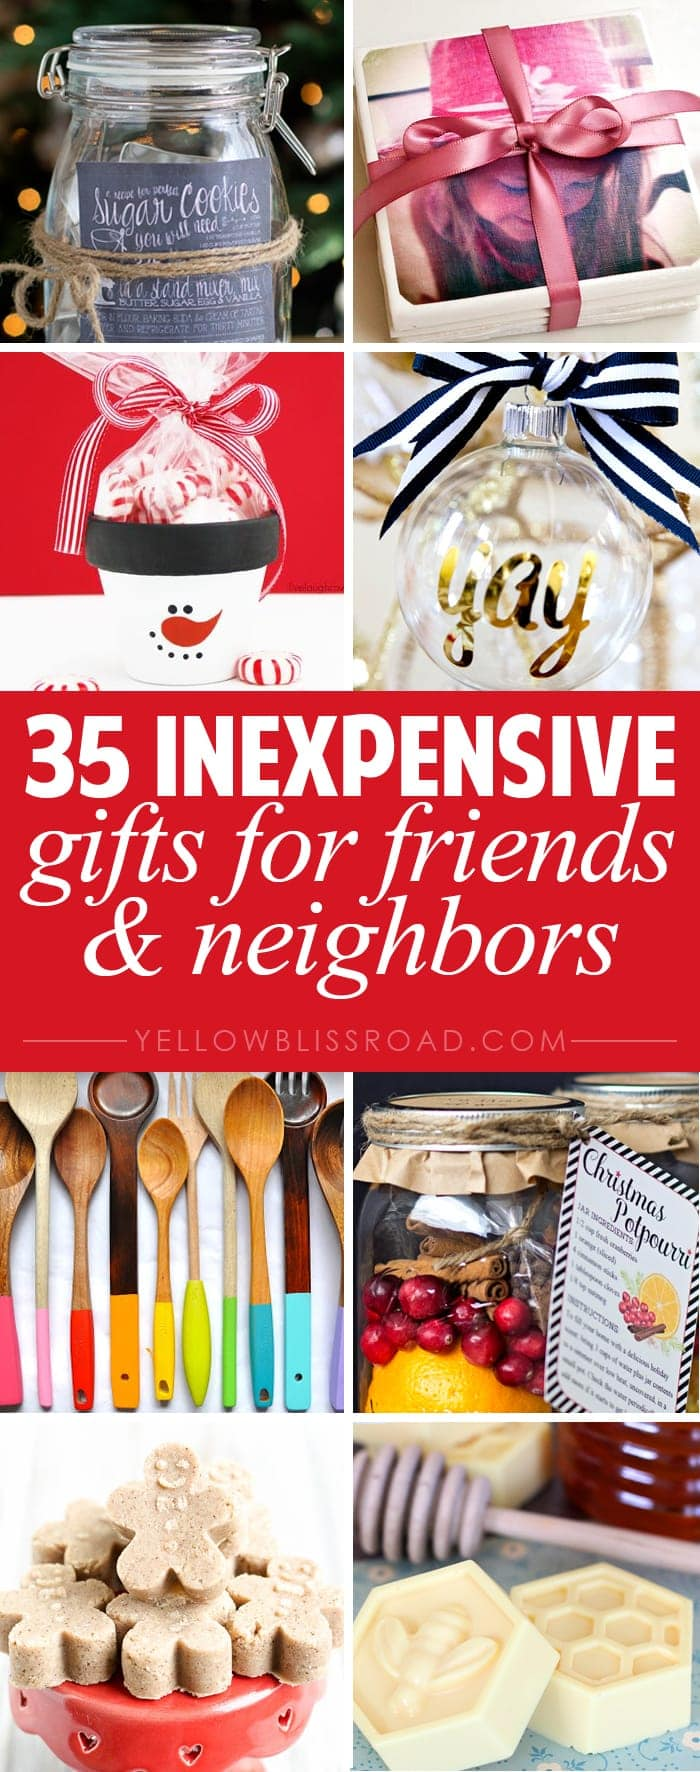 budget gifts ideas for friends and neighbors (homemade christmas gifts)